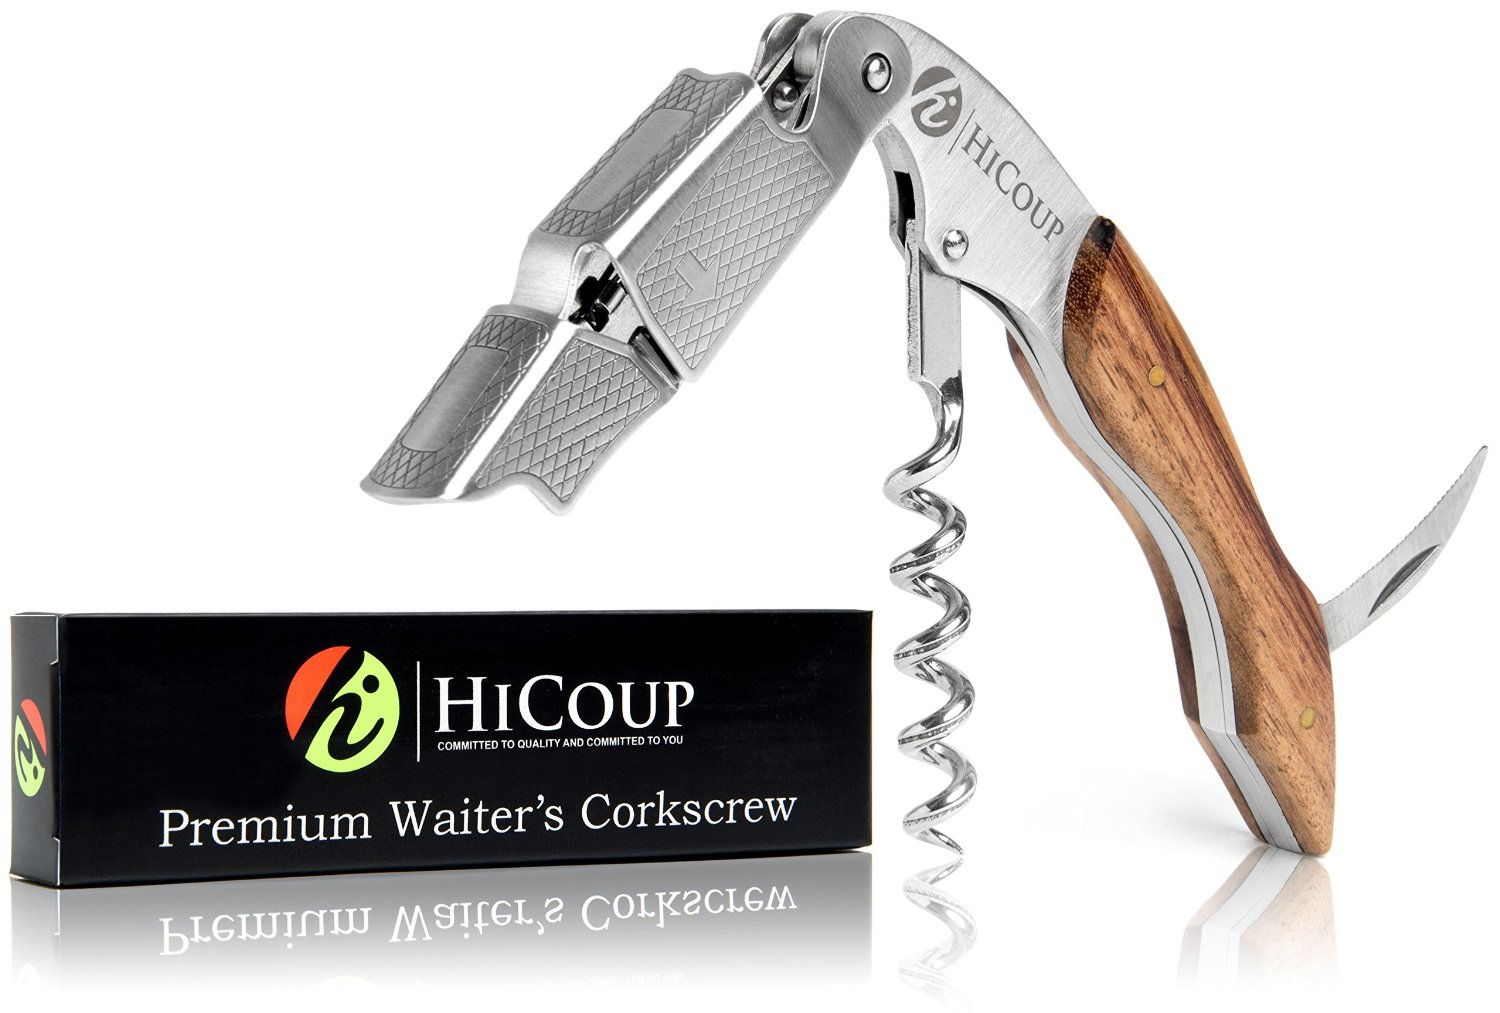 REVIEW: Waiters Corkscrew by HiCoup